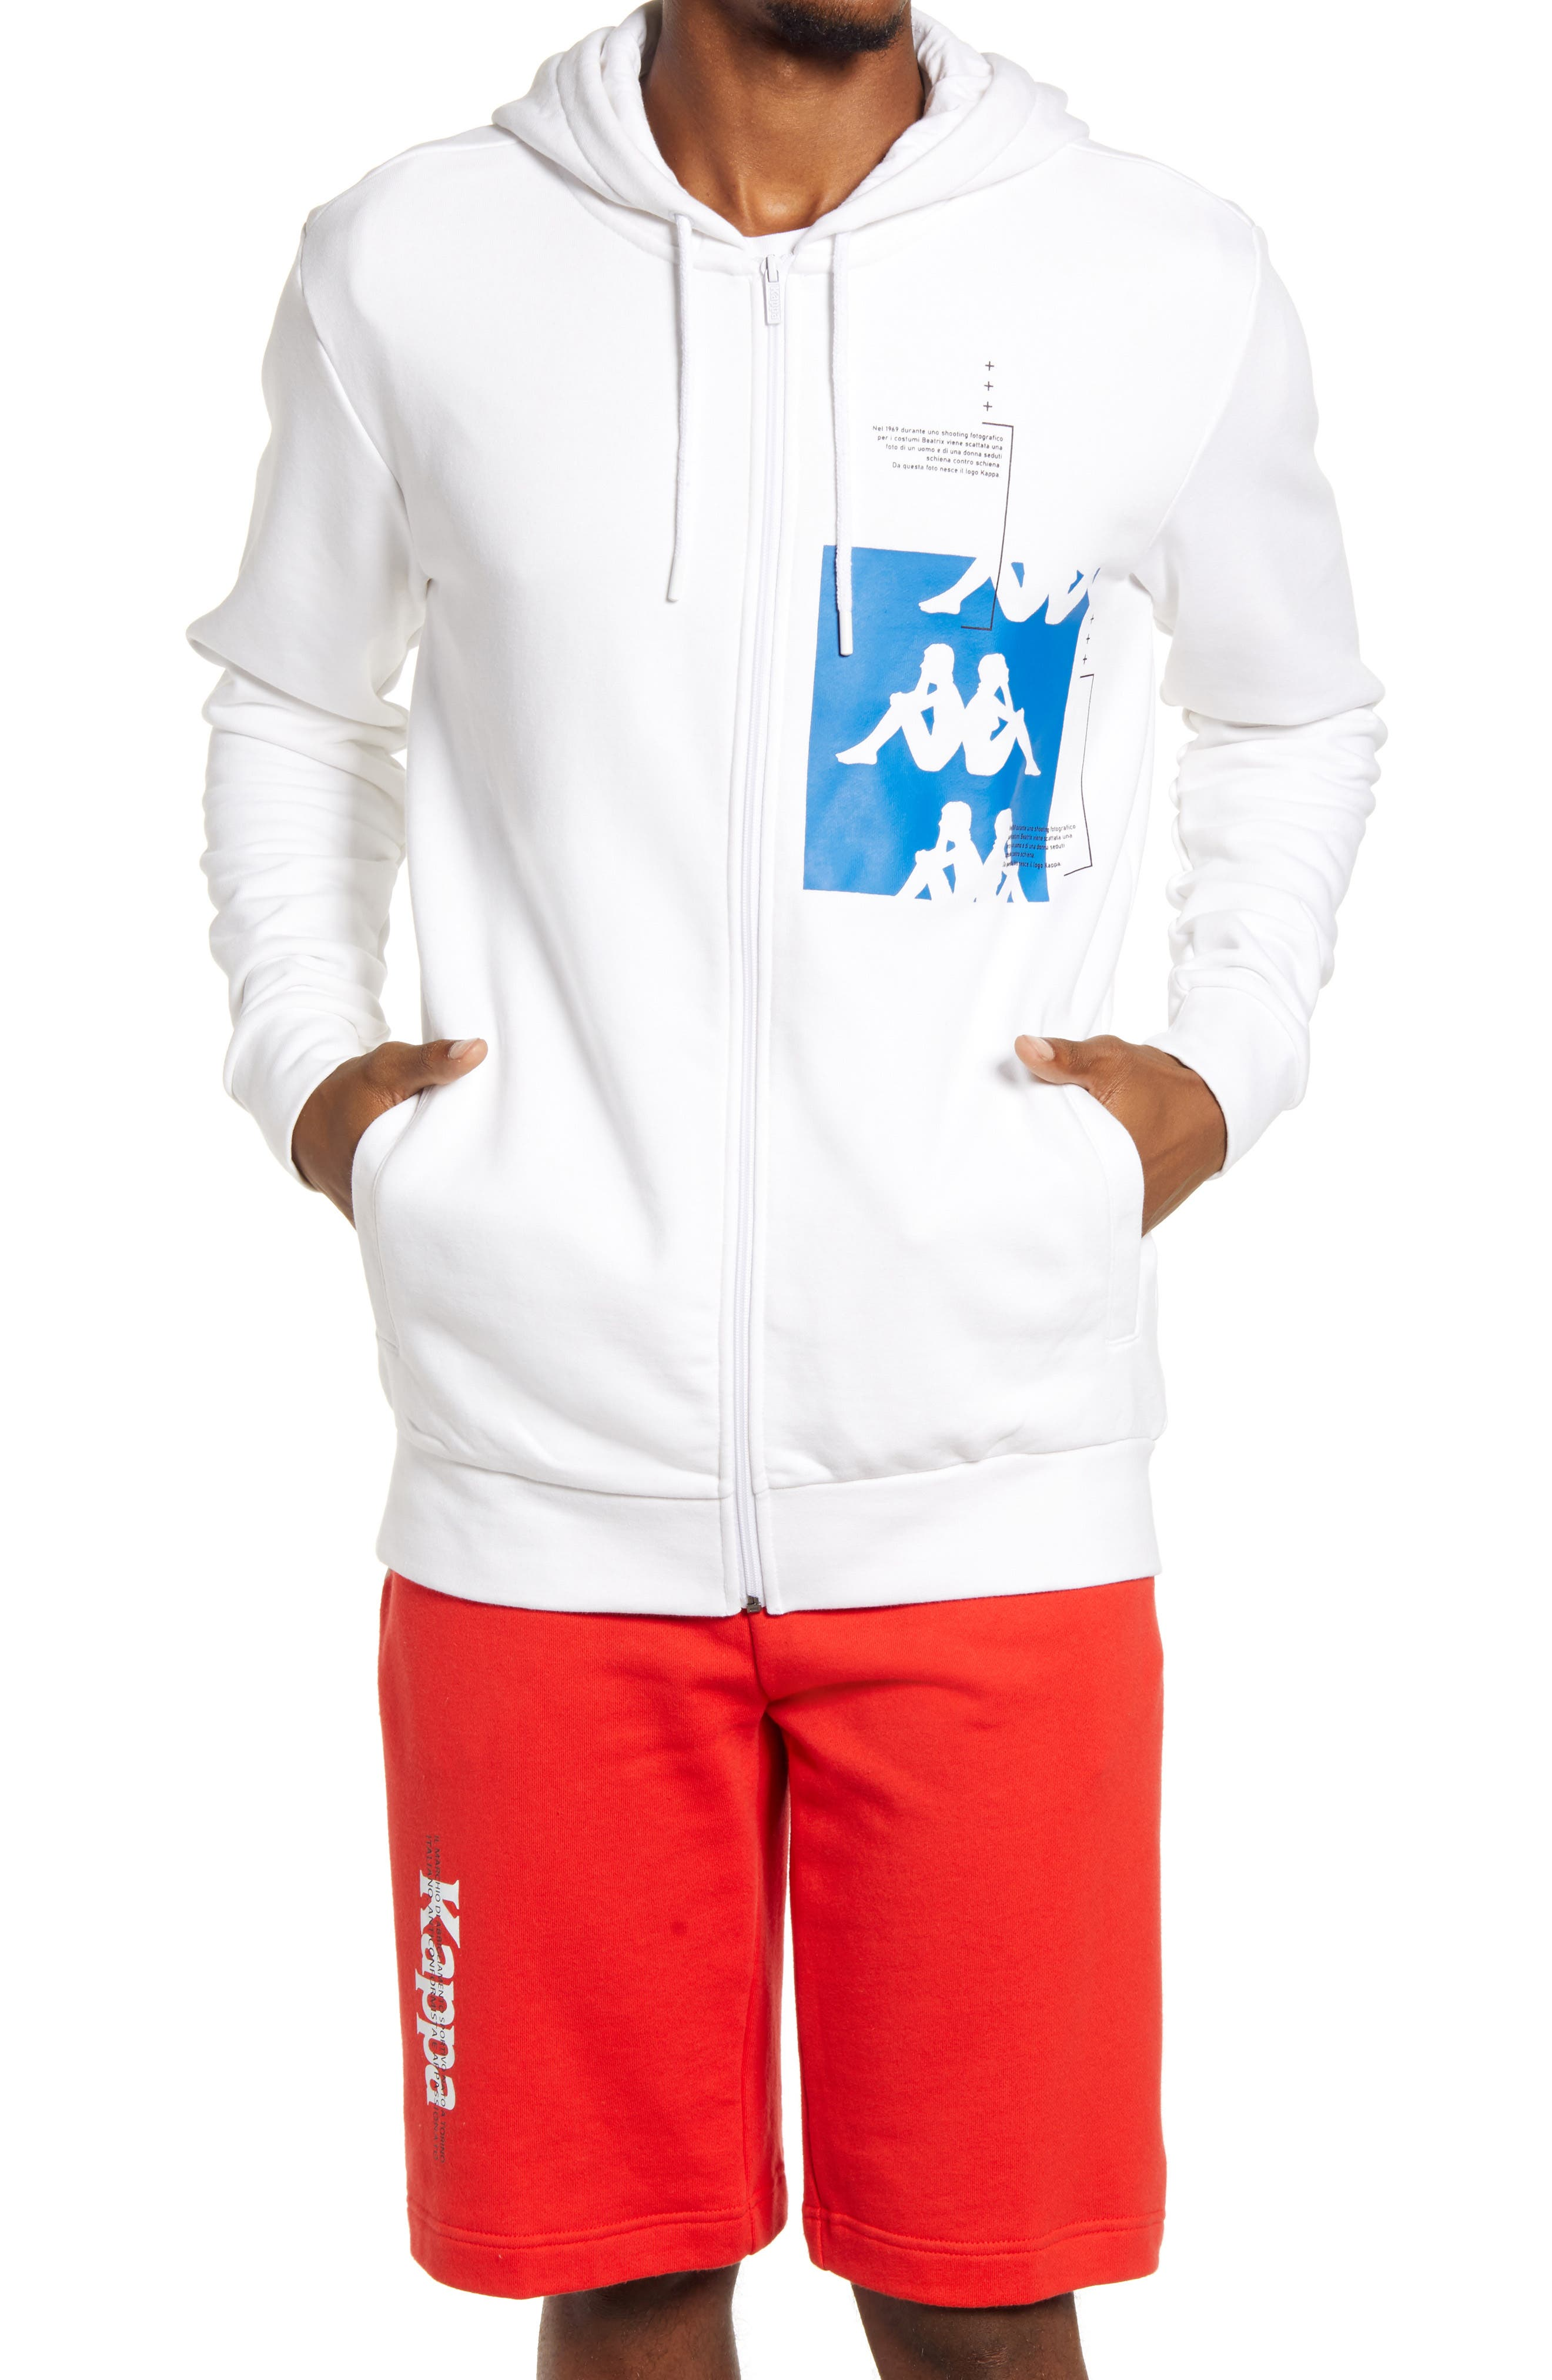 Authentic Hb Ecliss Zip Hoodie